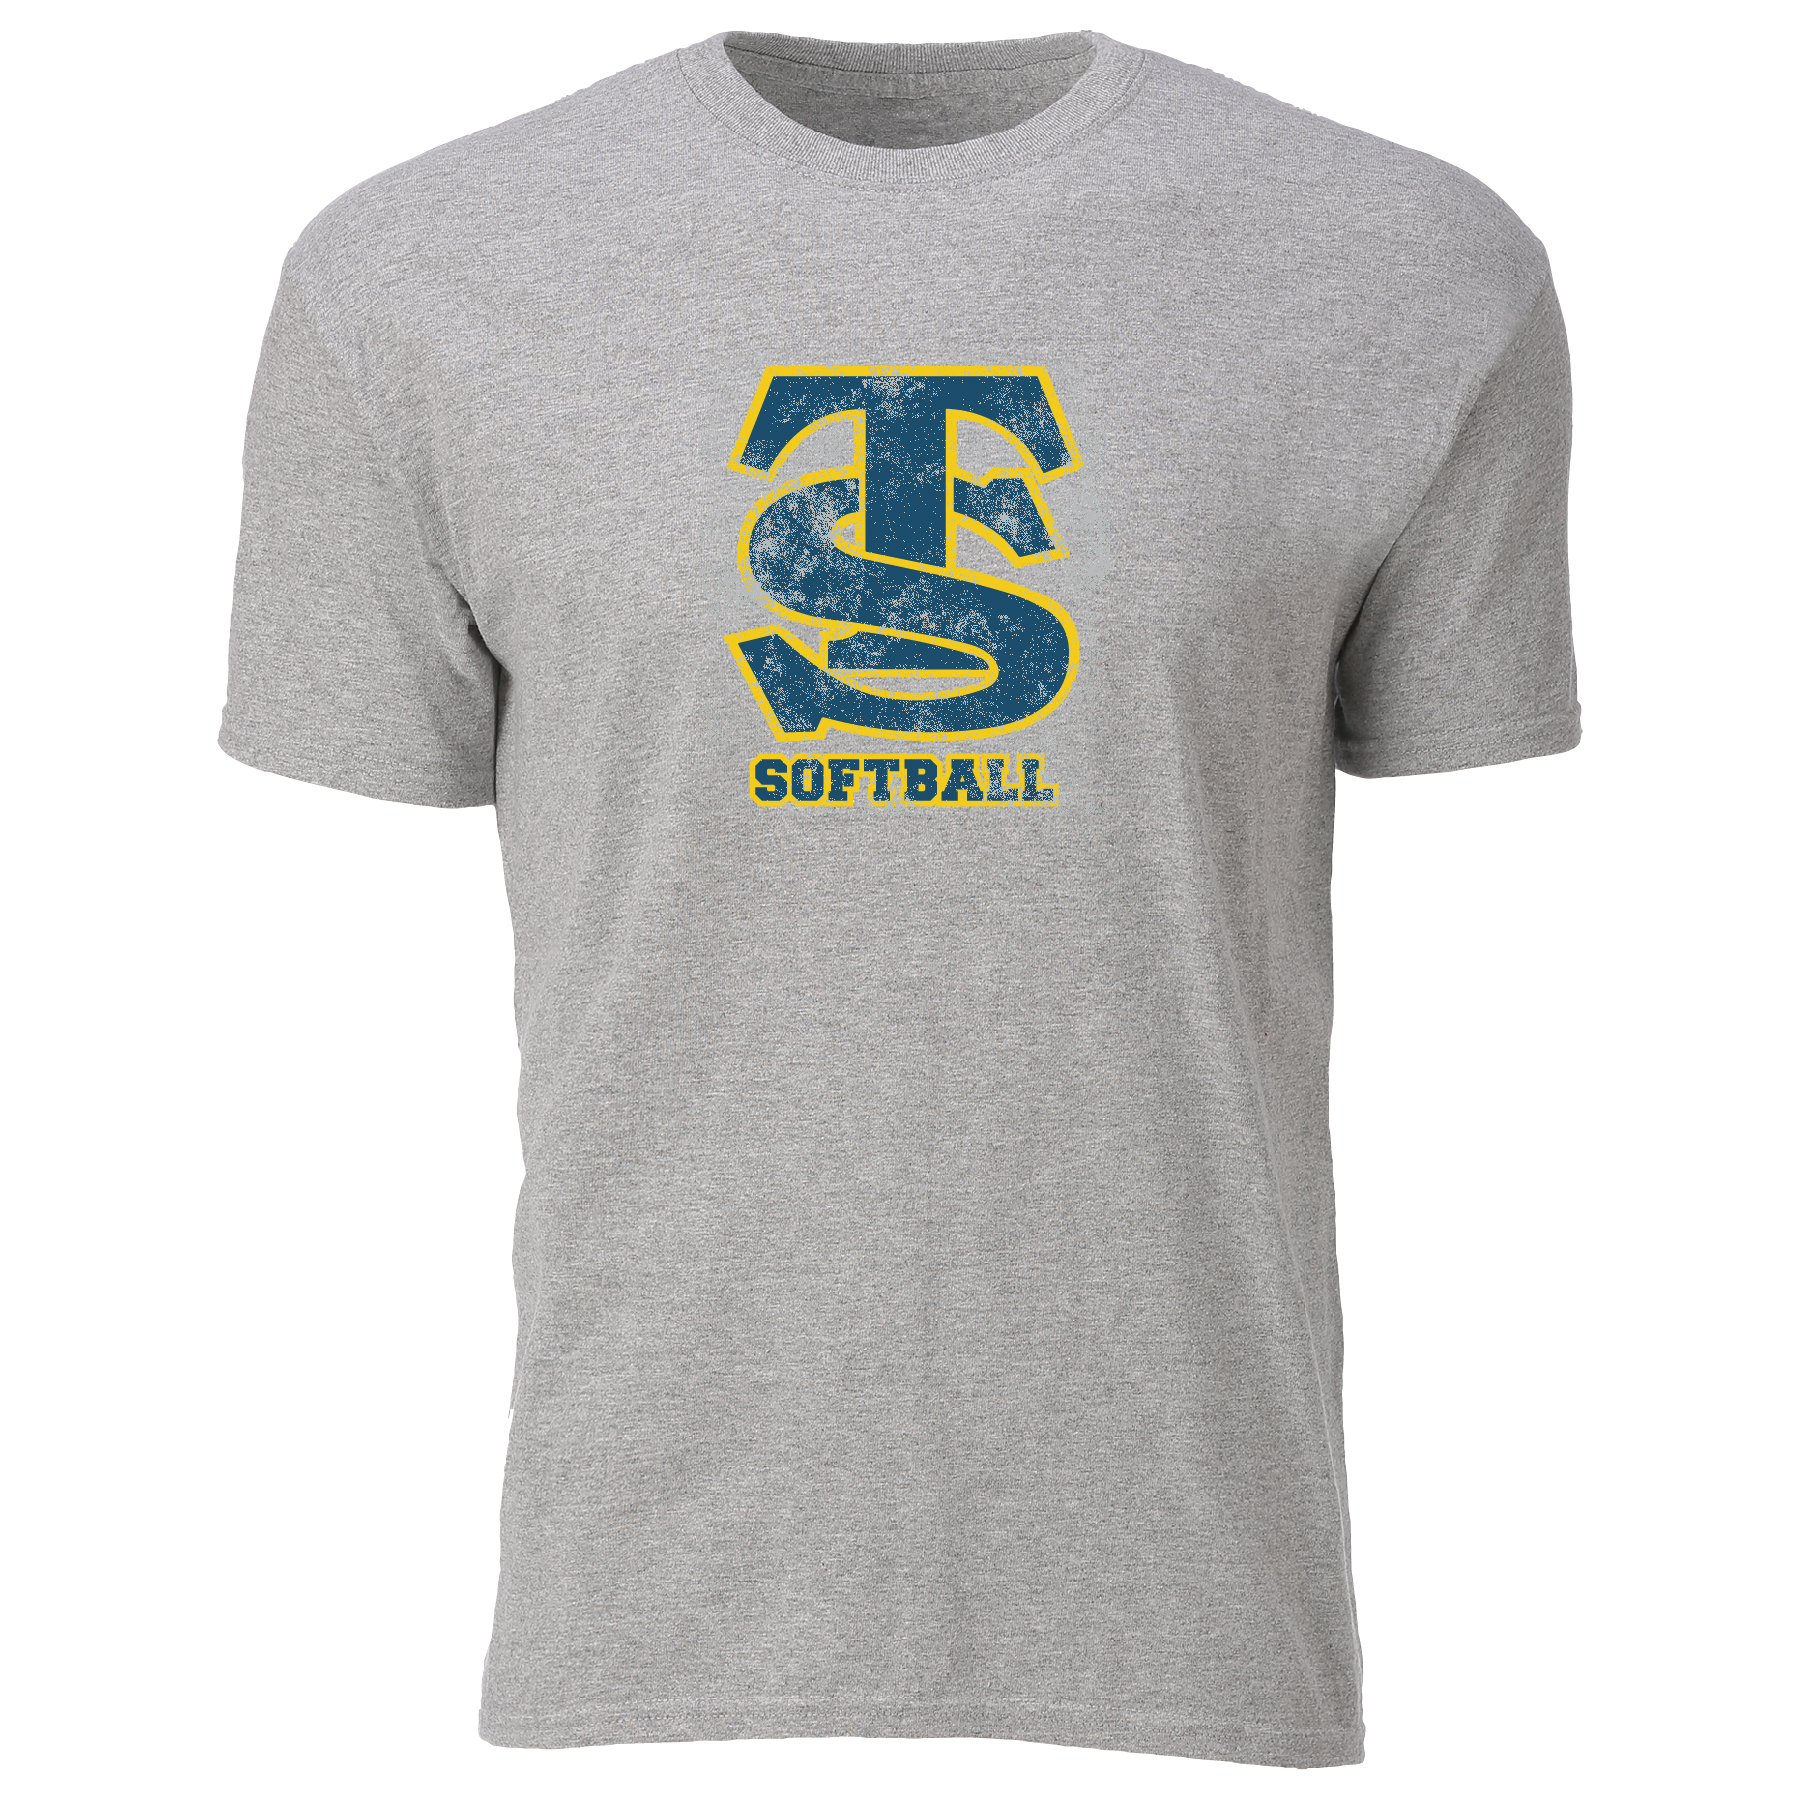 TS Softball T-shirt